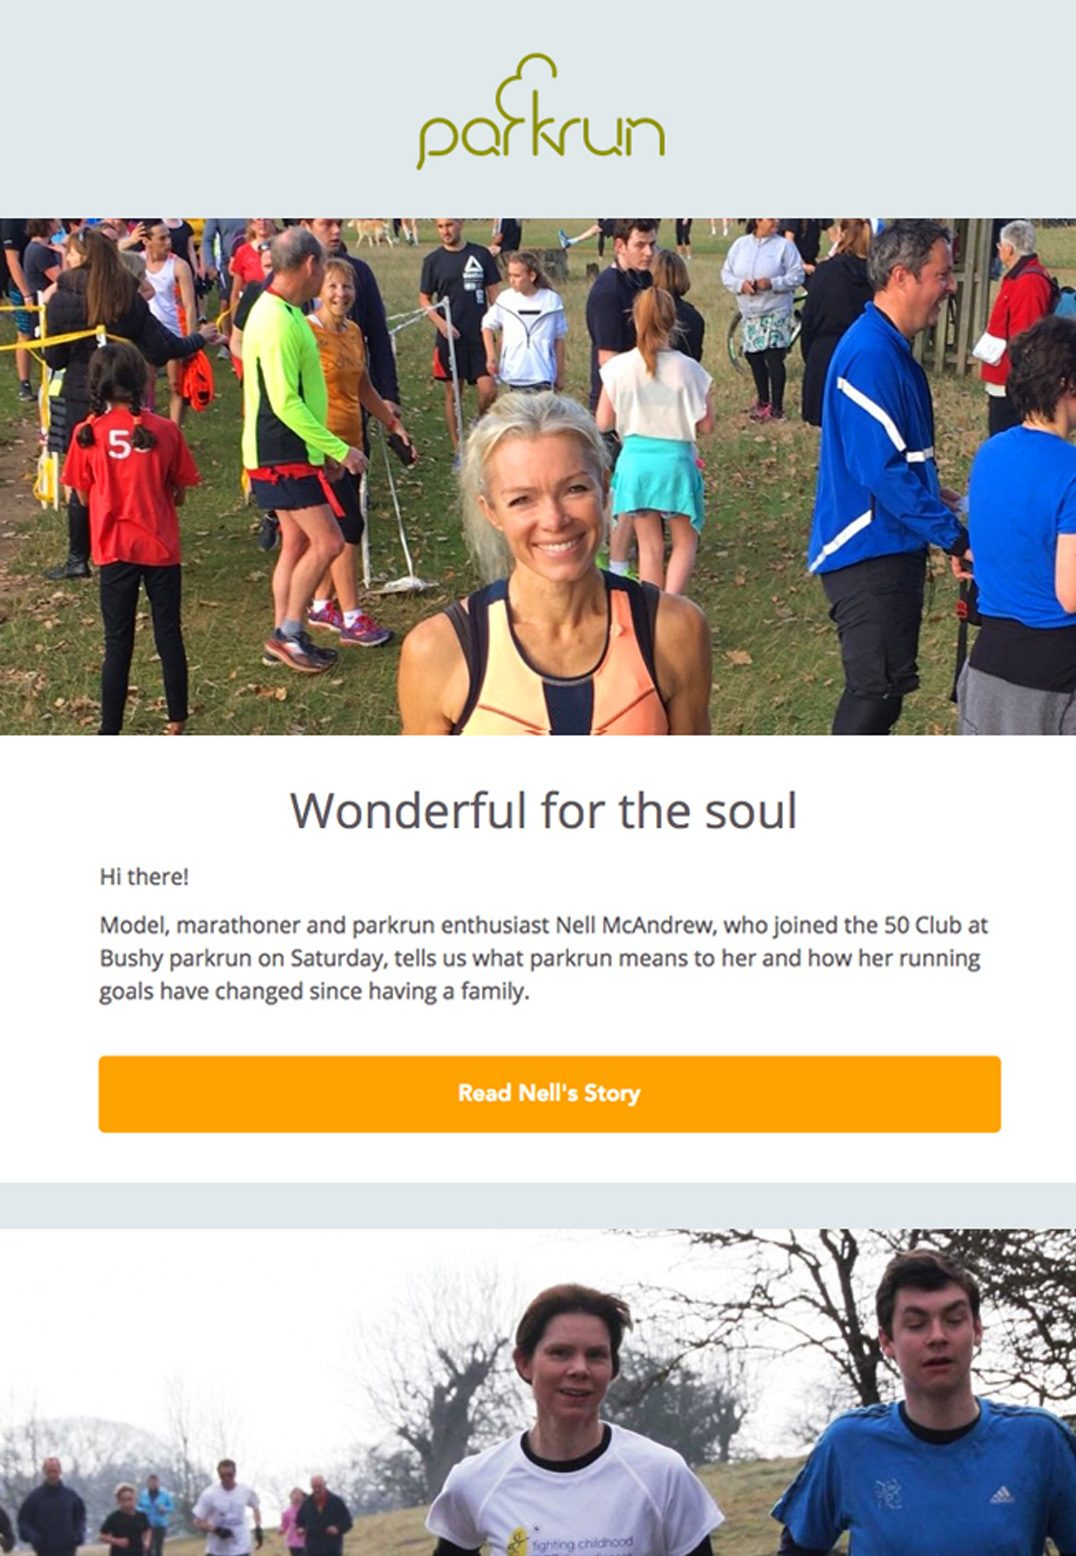 Parkrun – Compelling Email Newsletter Copy